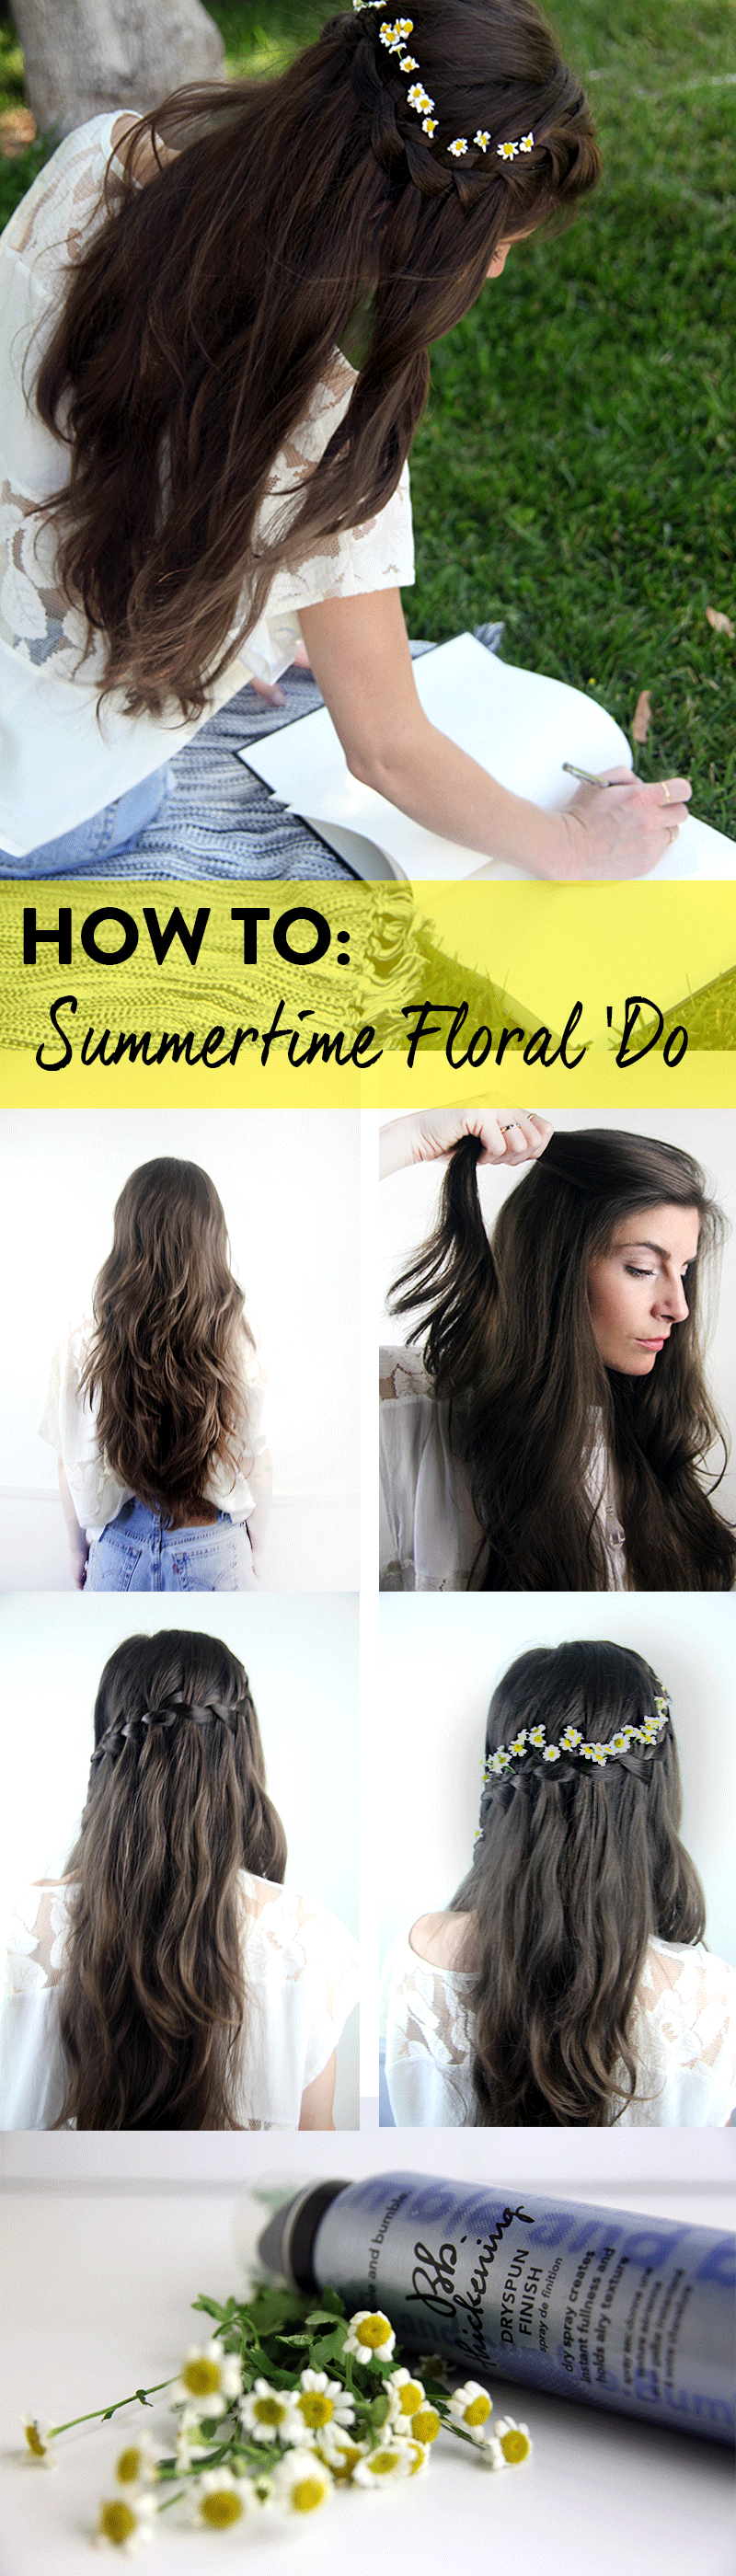 Established California | Beauty | Summertime Floral 'Do